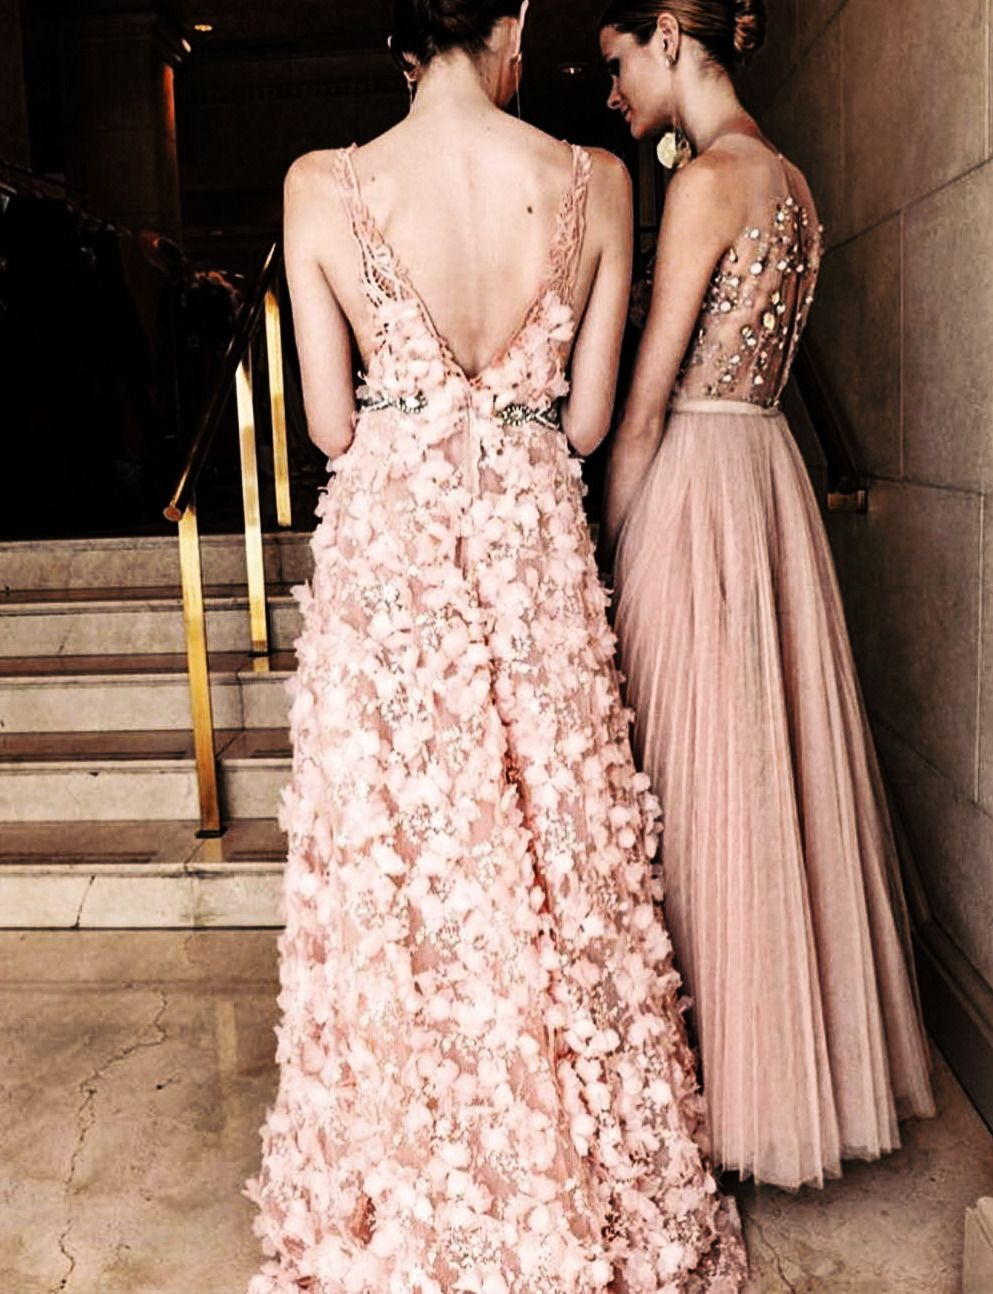 Backstage at Javier Saiach Haute Couture 2016. | gossip girl ...